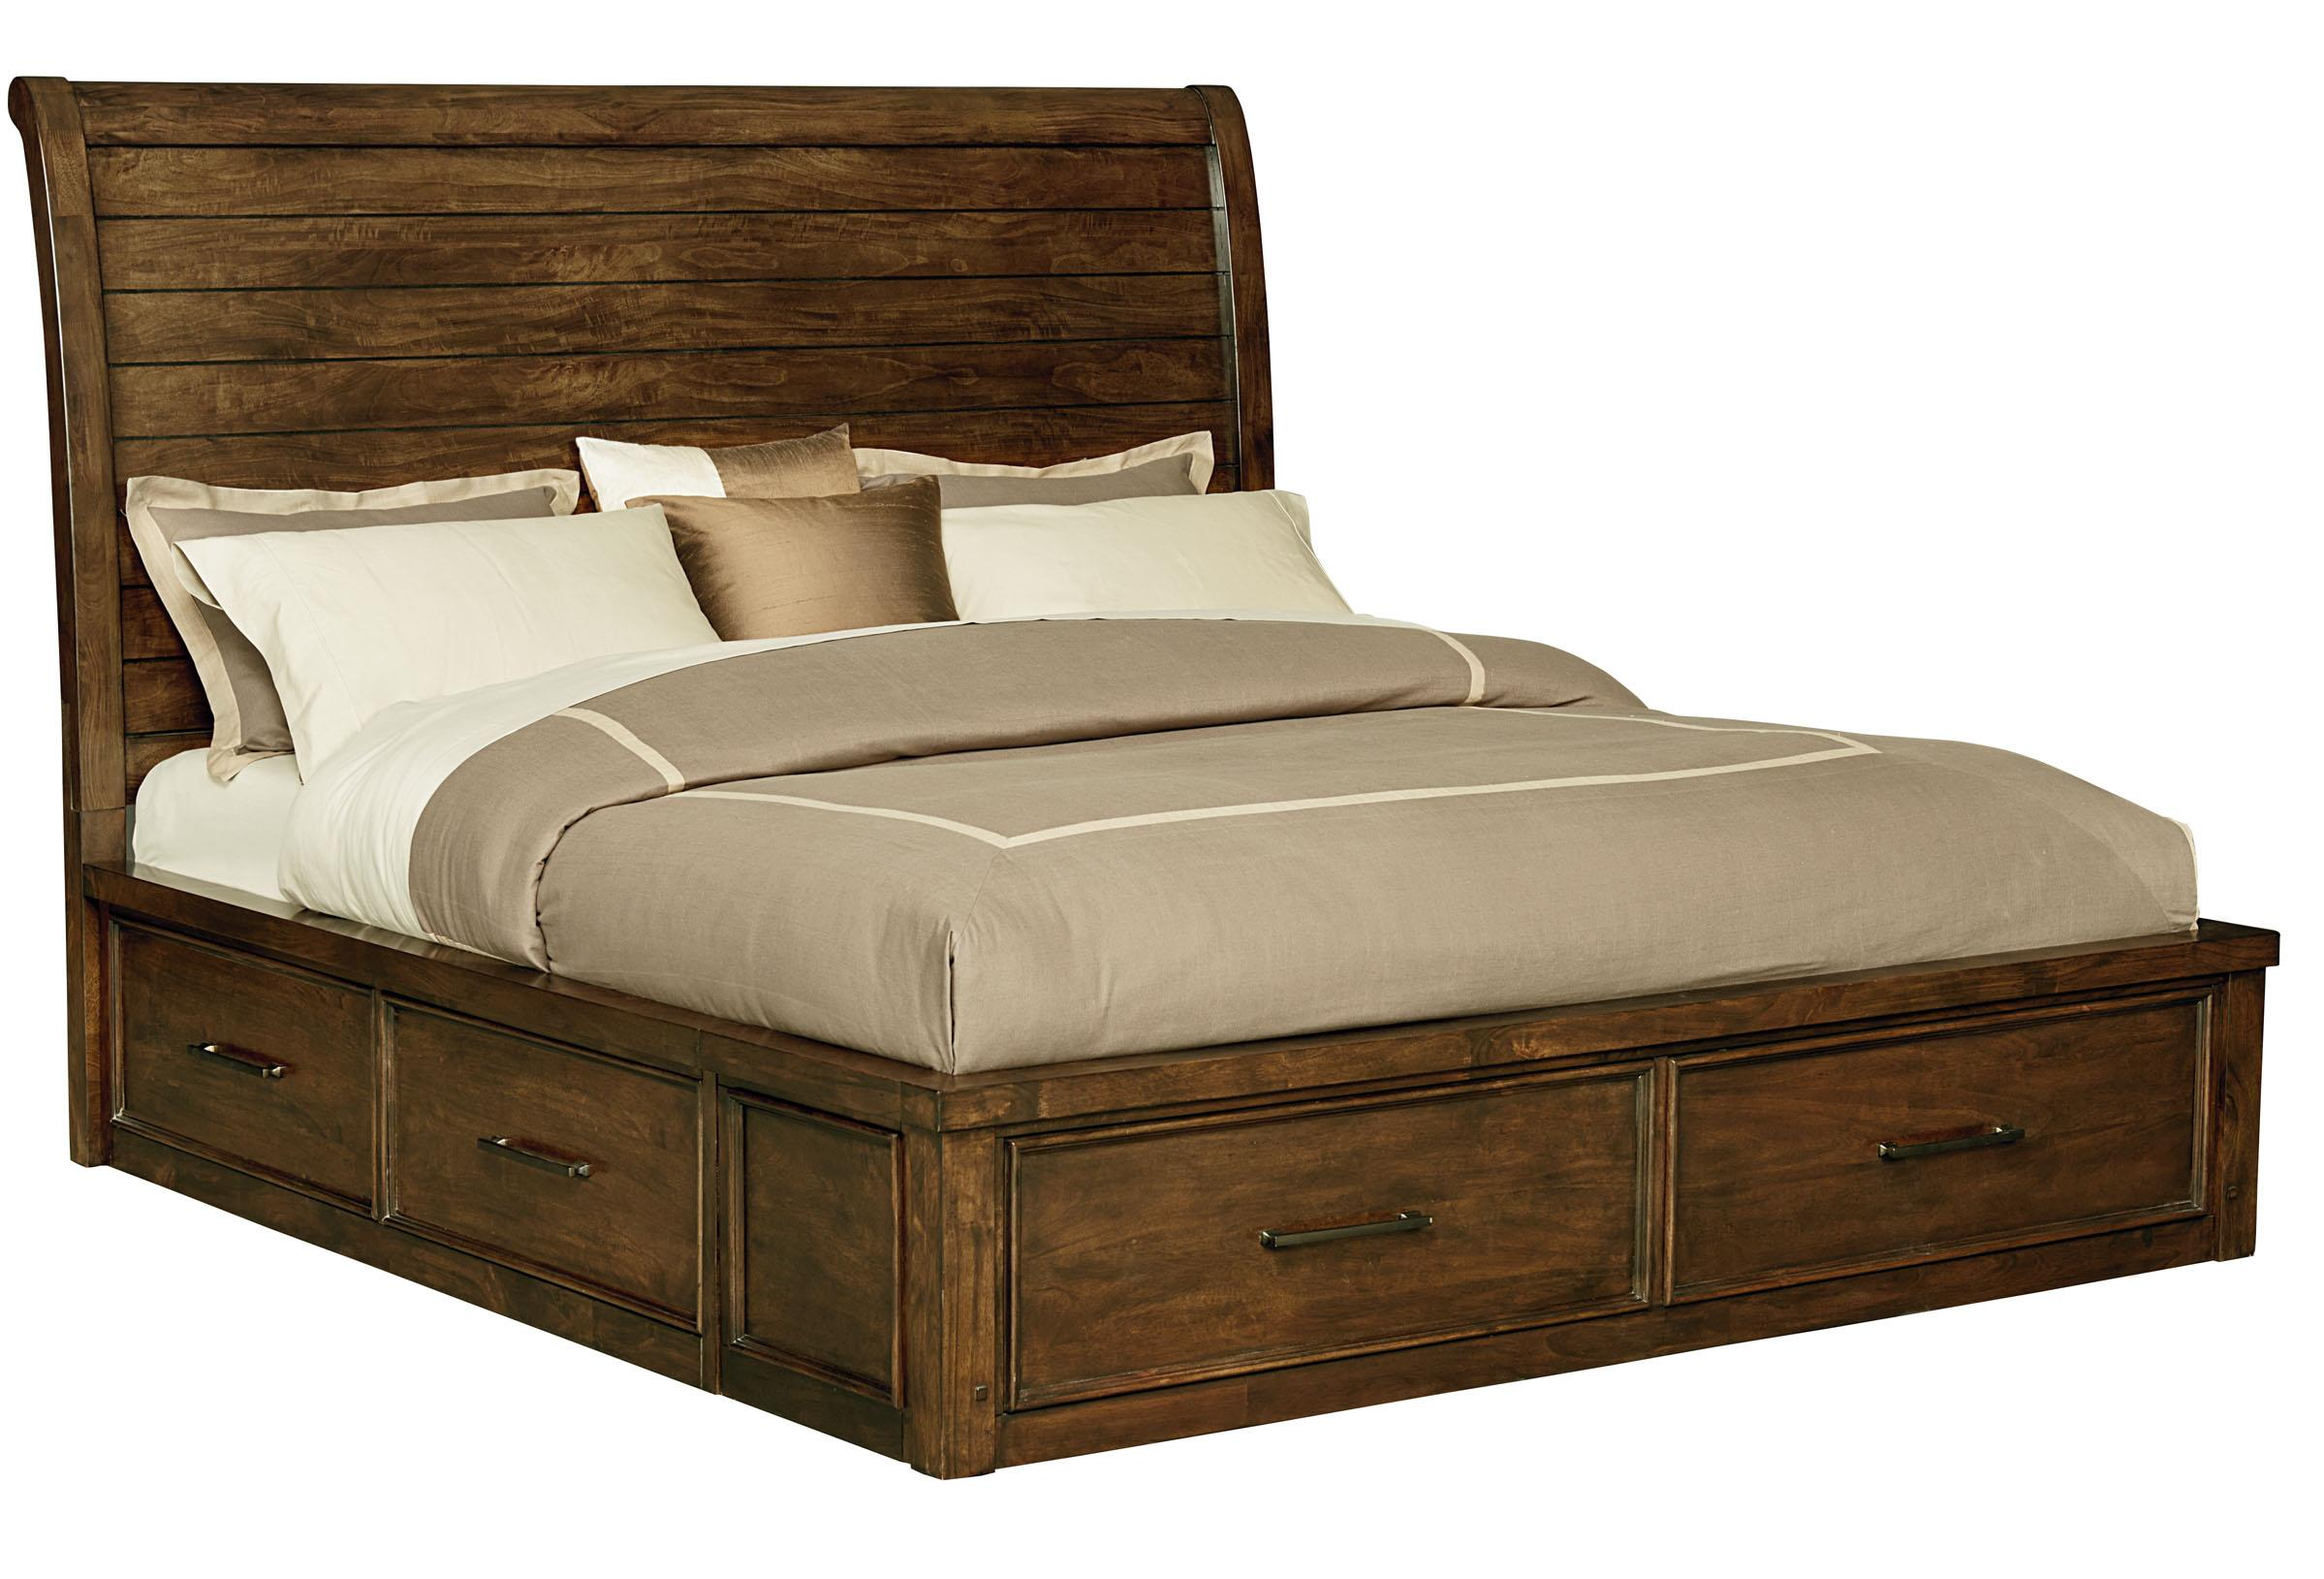 Queen Sleigh Bed With Underbed Storage By Standard